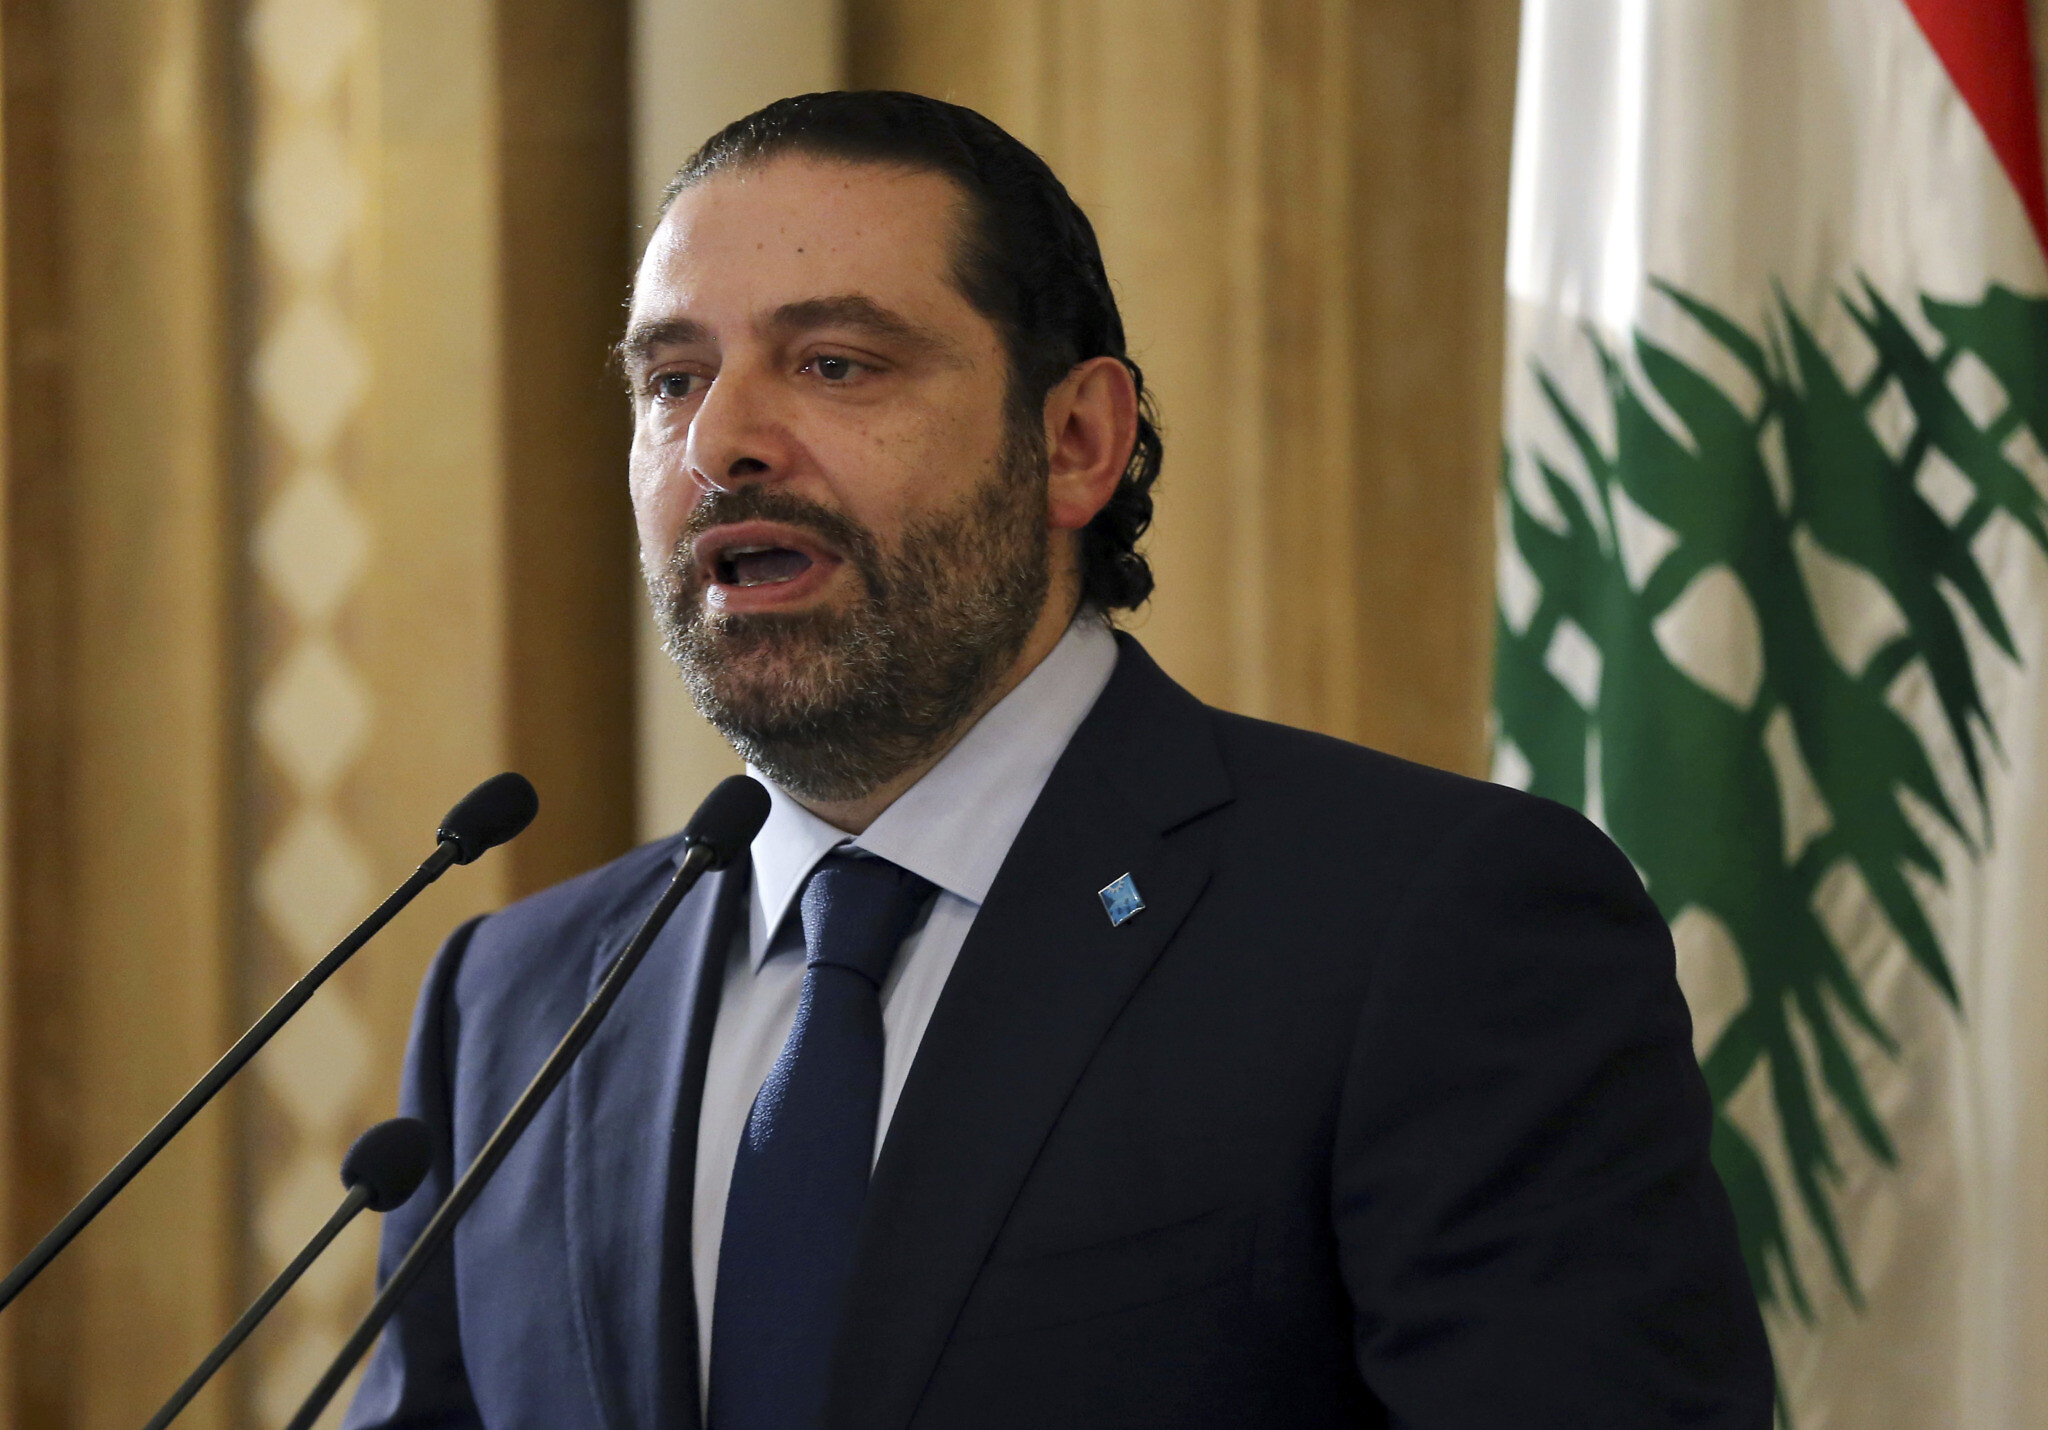 Hariri again tasked with forming new government for crisis-hit Lebanon